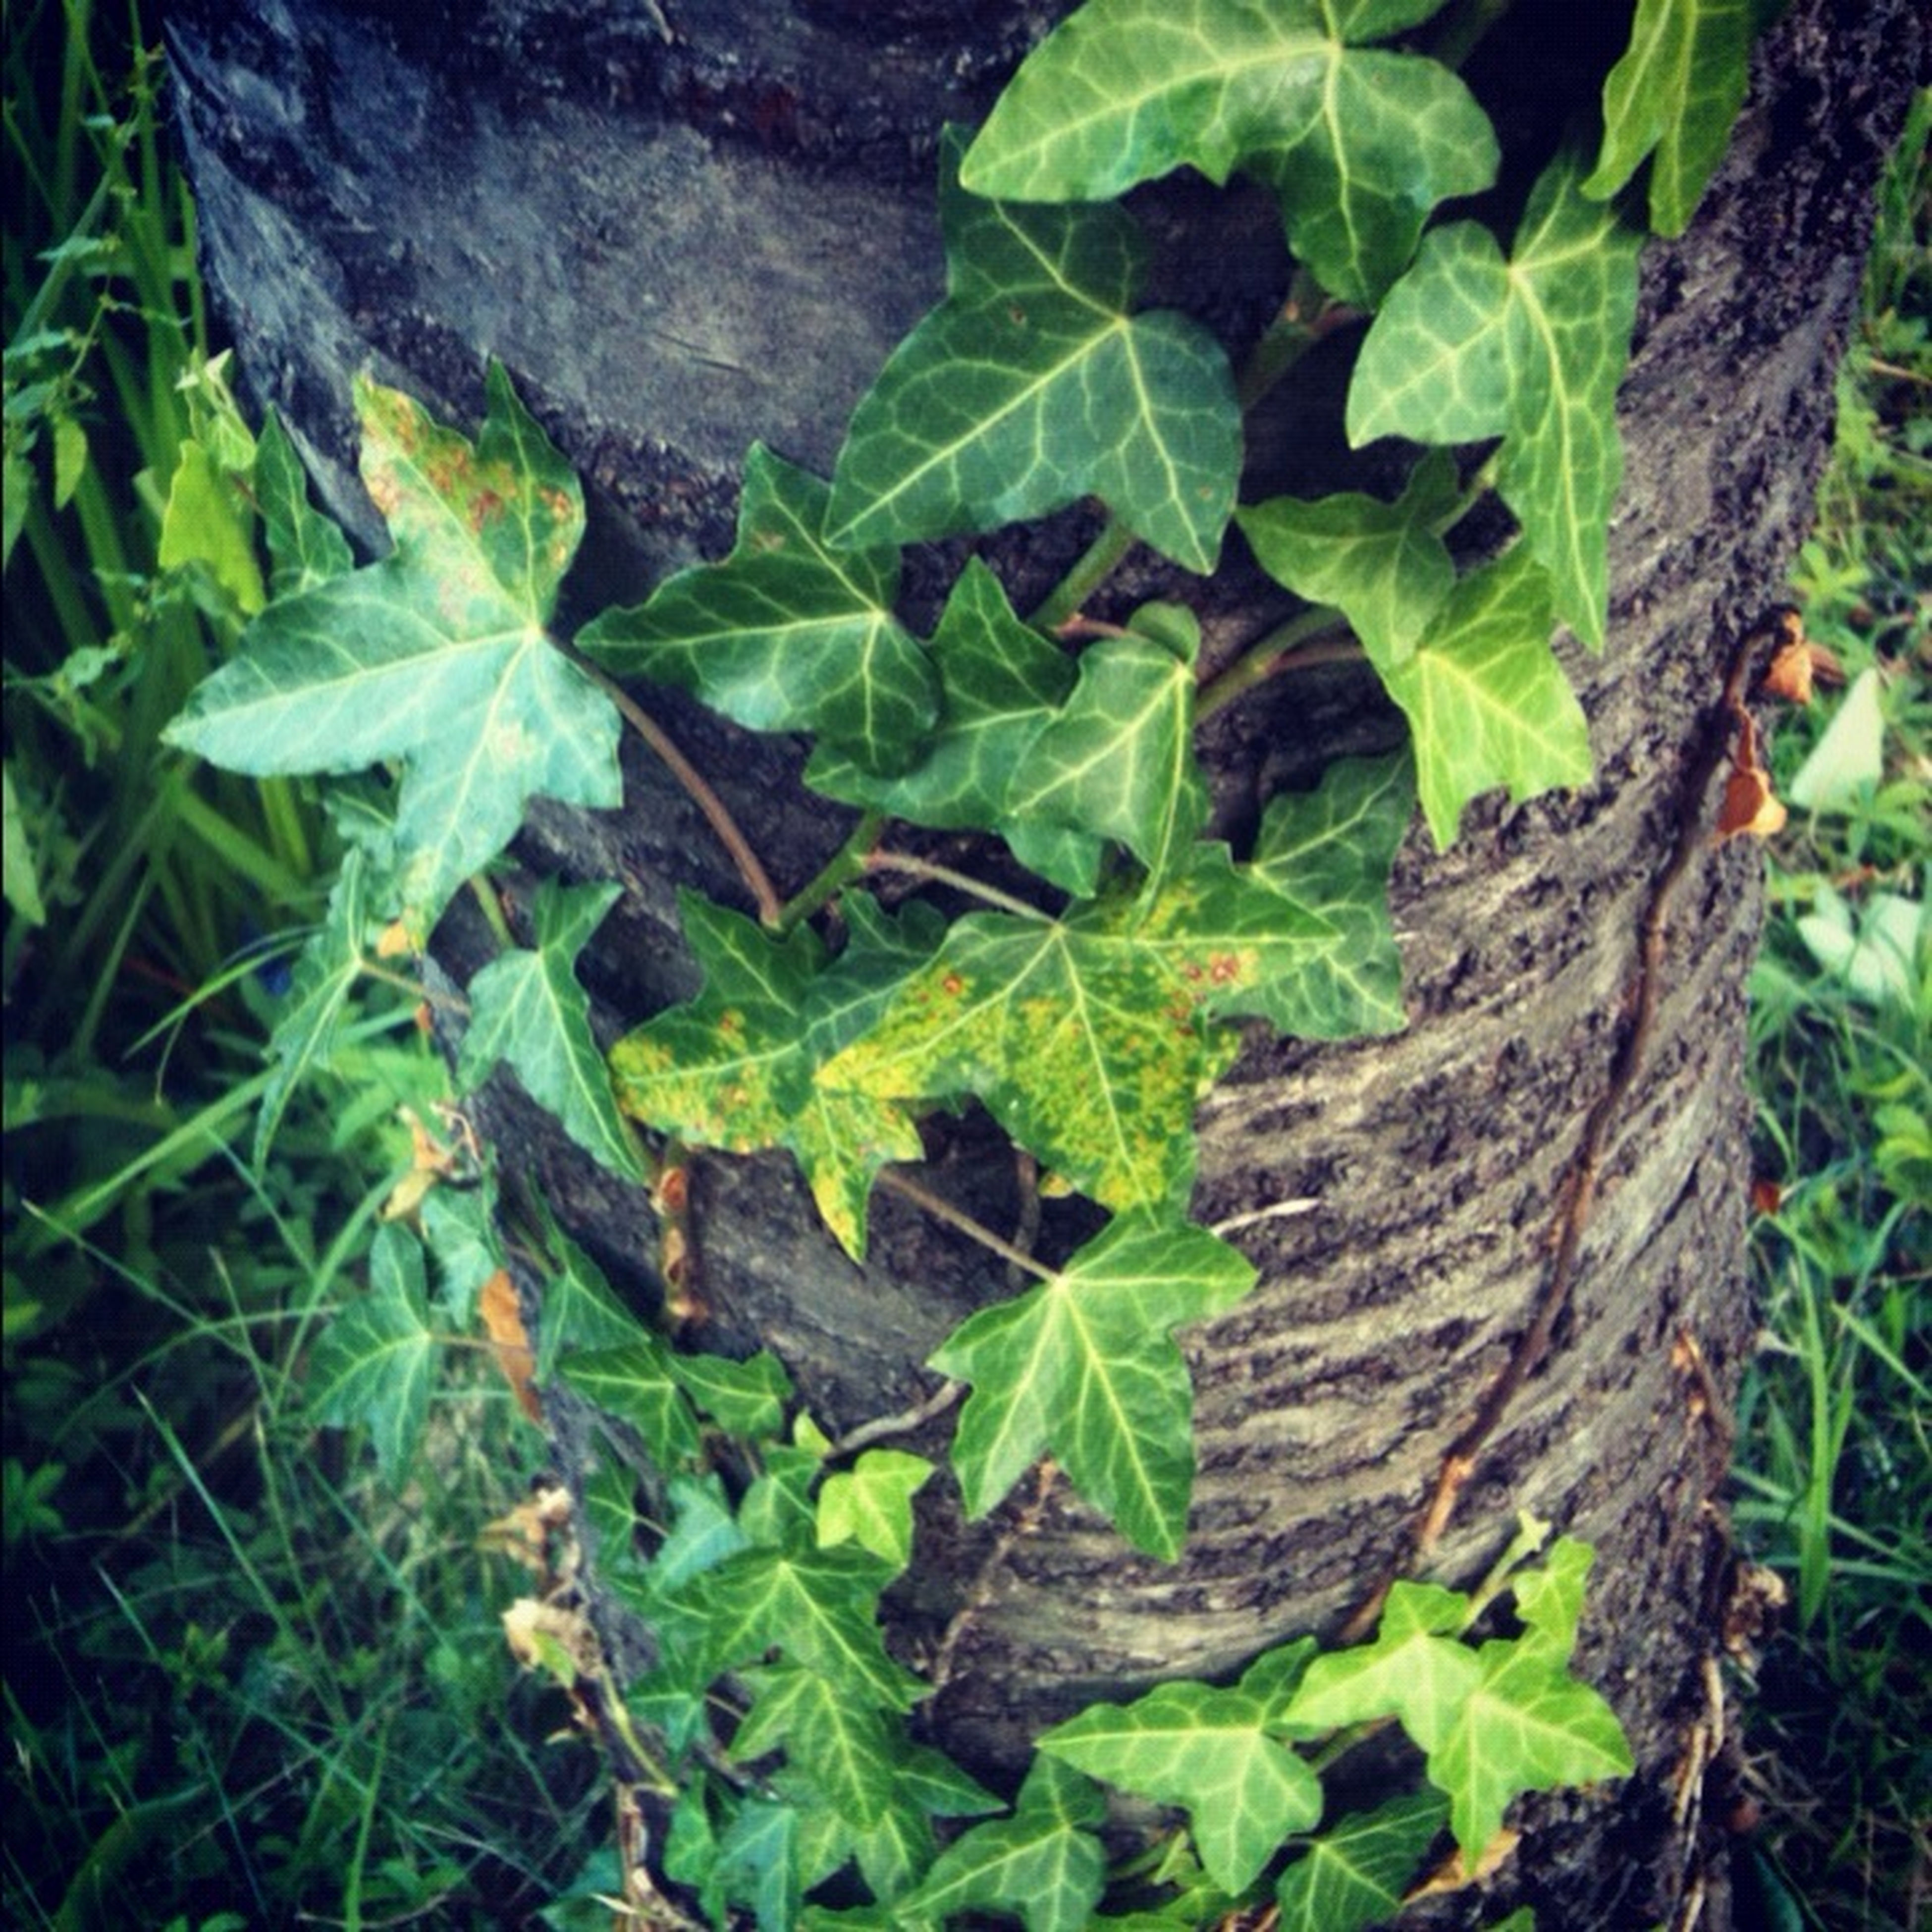 green color, leaf, growth, plant, nature, high angle view, close-up, growing, moss, green, beauty in nature, tranquility, day, outdoors, freshness, natural pattern, field, no people, grass, leaf vein